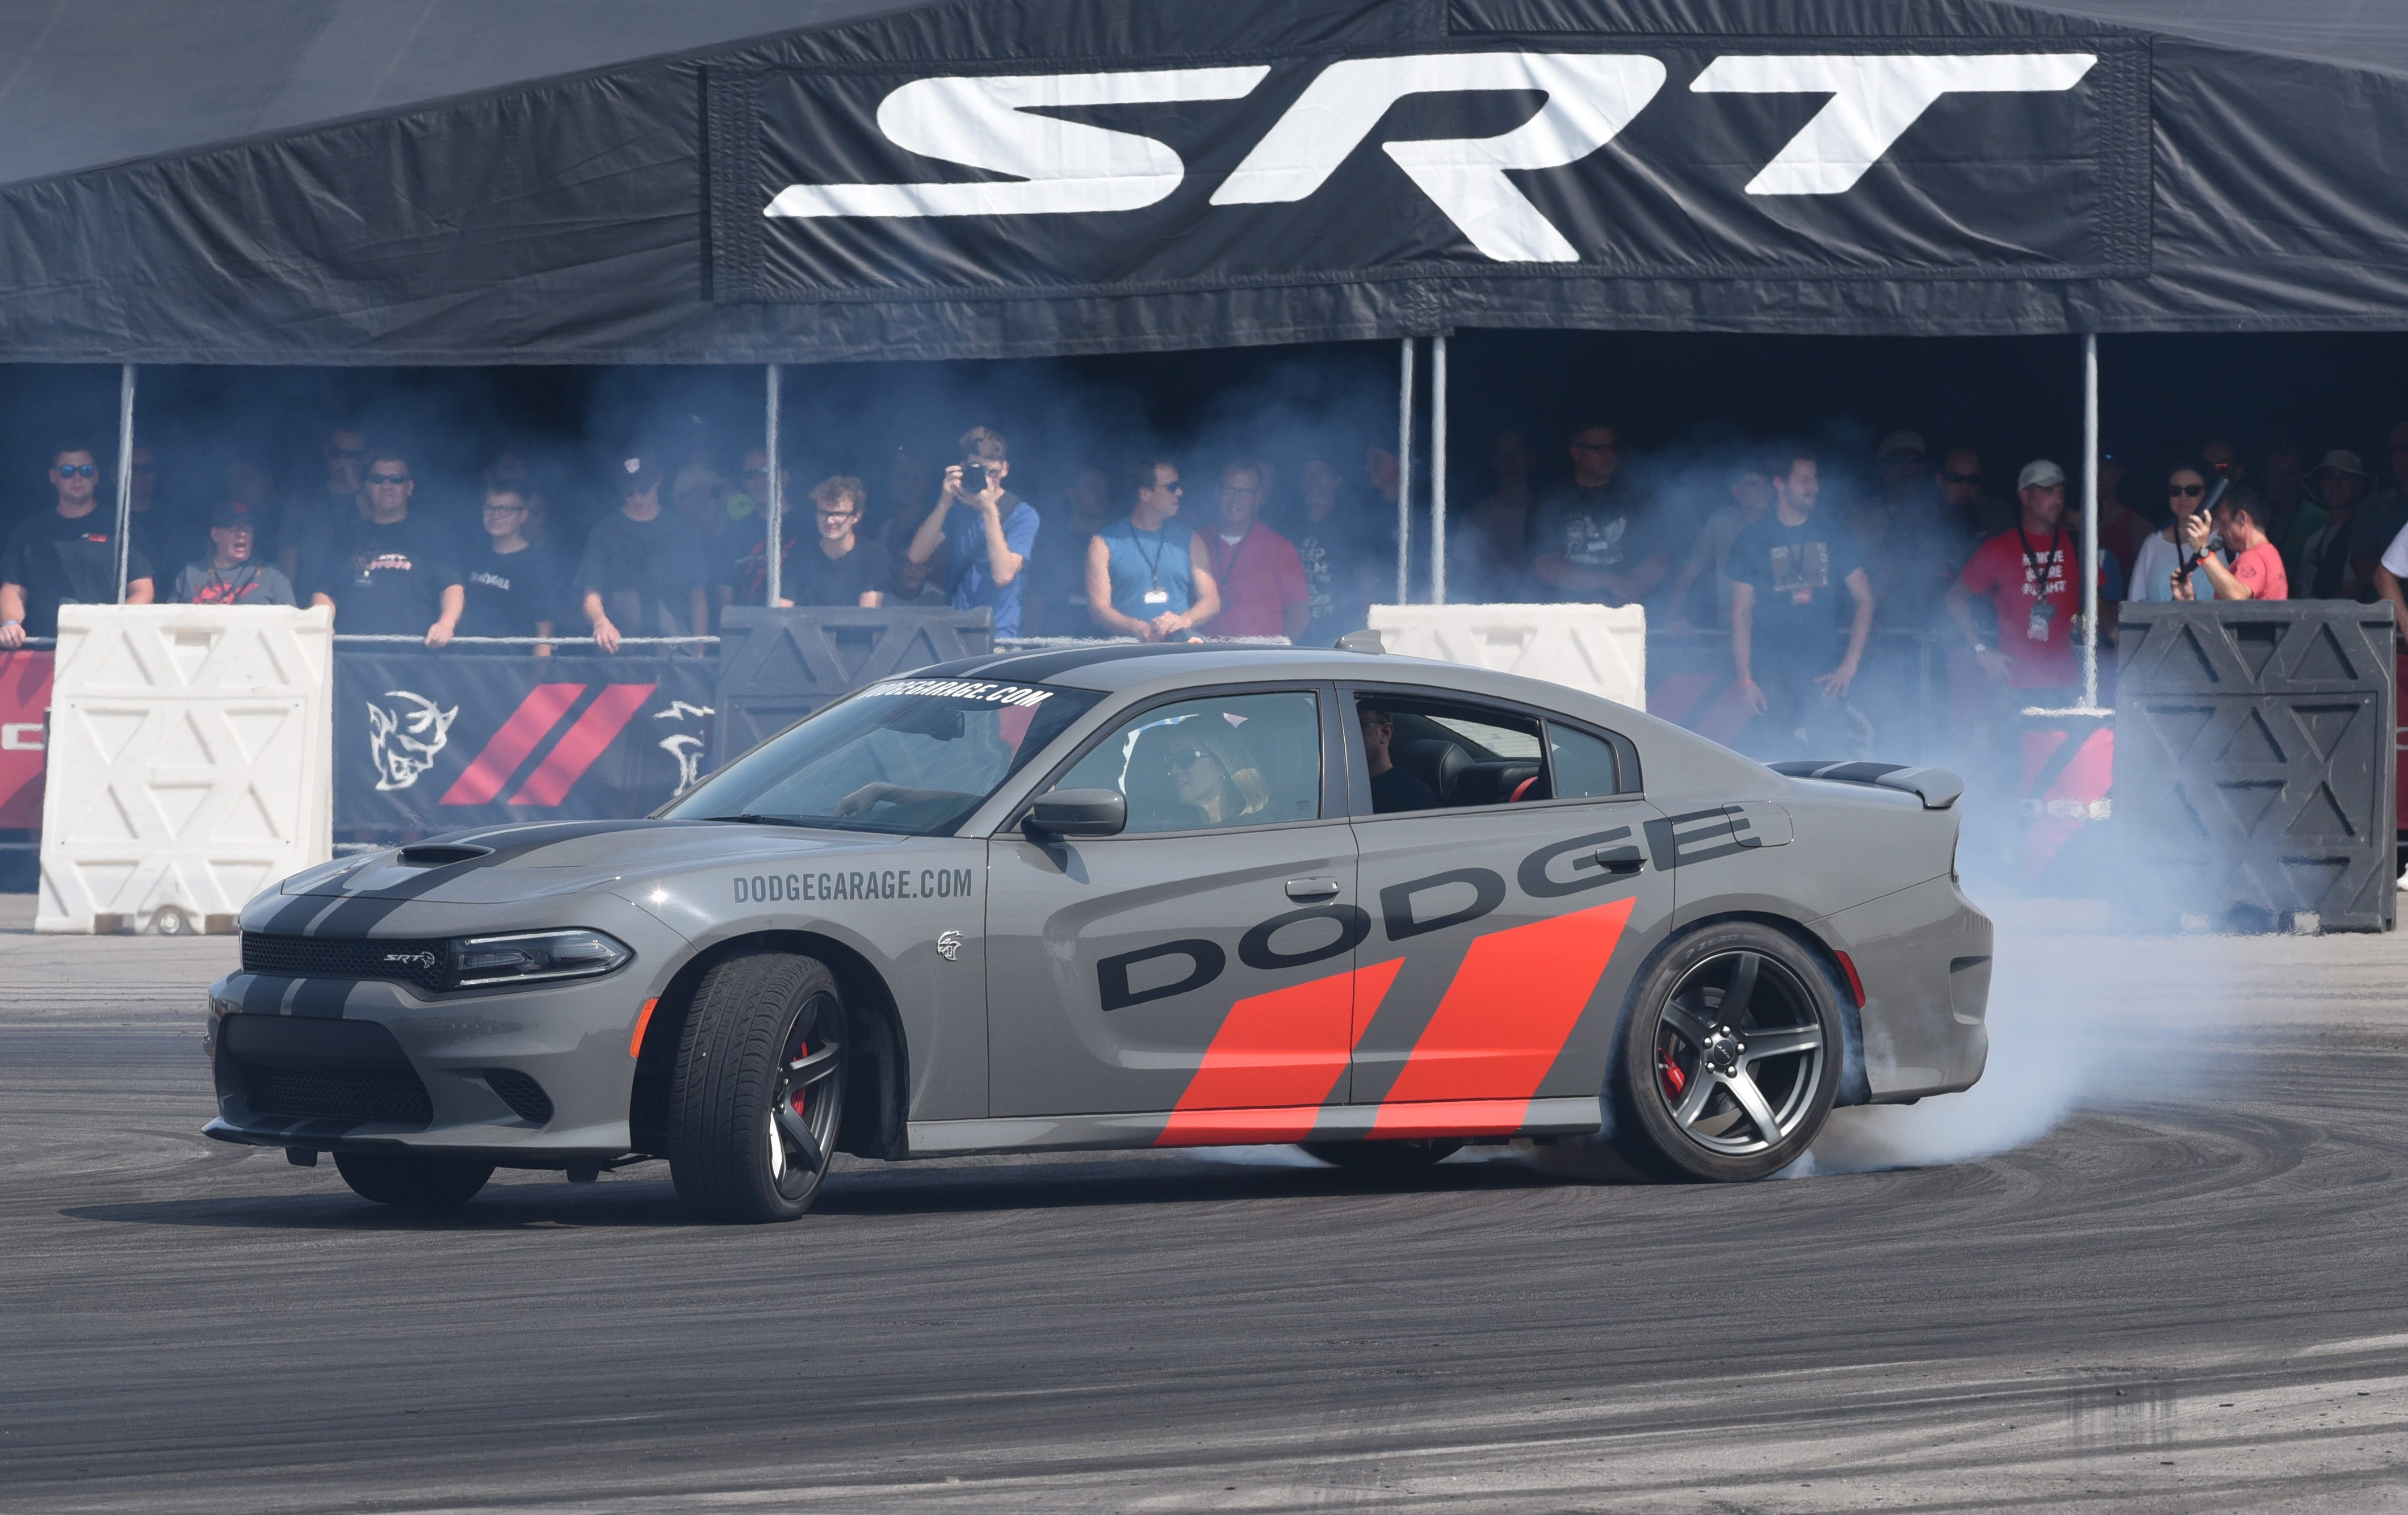 http://www.detroitnews.com/picture-gallery/business/autos/chrysler ...